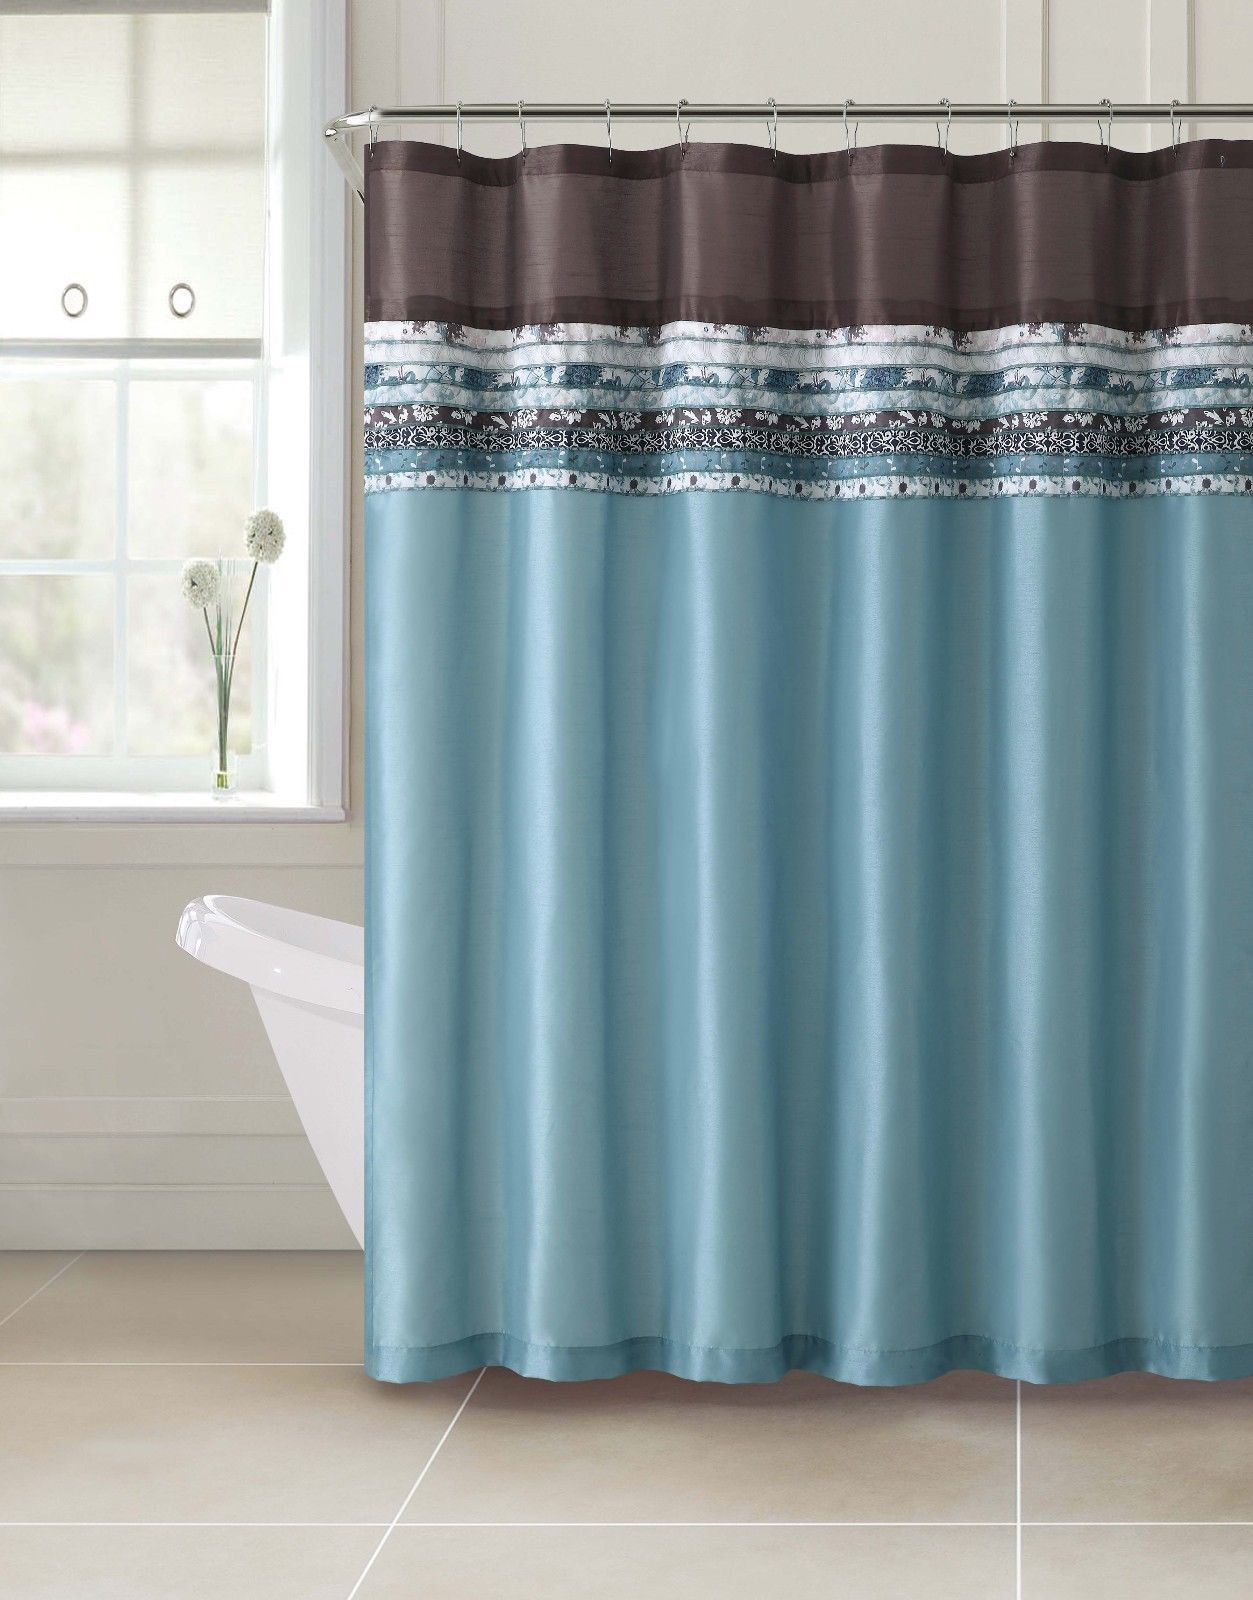 Beau Poetica Faux Silk Aqua Blue Teal Brown Turquoise Fabric Bathroom Shower  Curtain | EBay